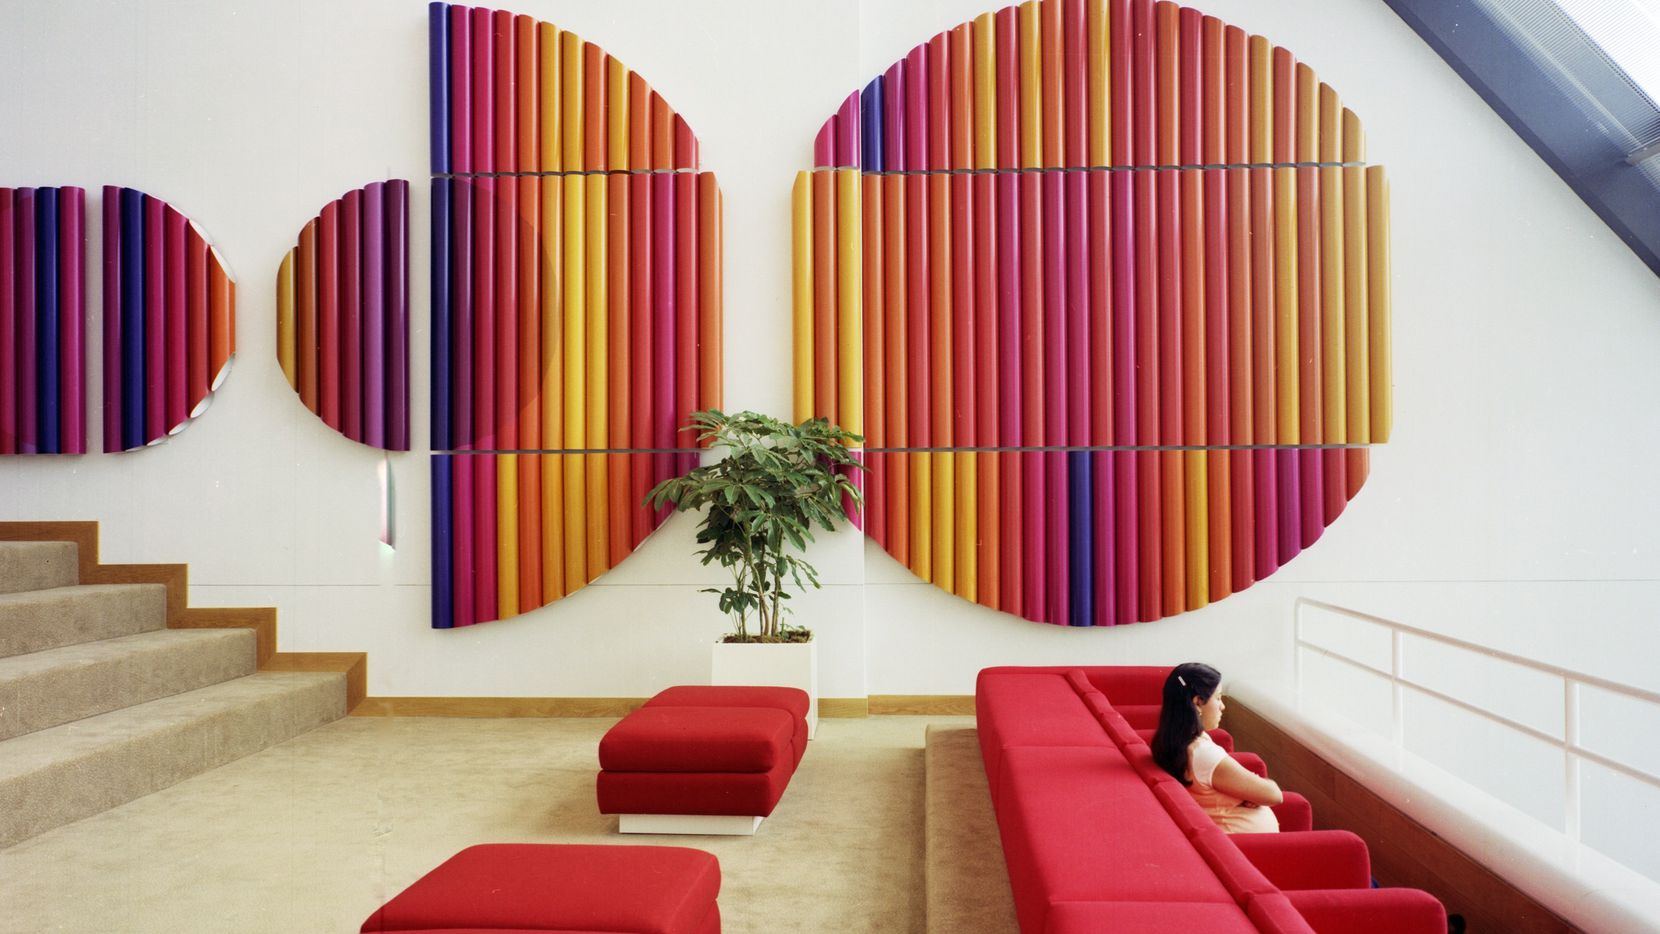 Thom was regularly hired to document the California work of architectural giant SOM, including this 1977 data processing center for Bank of America, in San Francisco, where his sense of color and form are punctuated by the figure of a young woman.